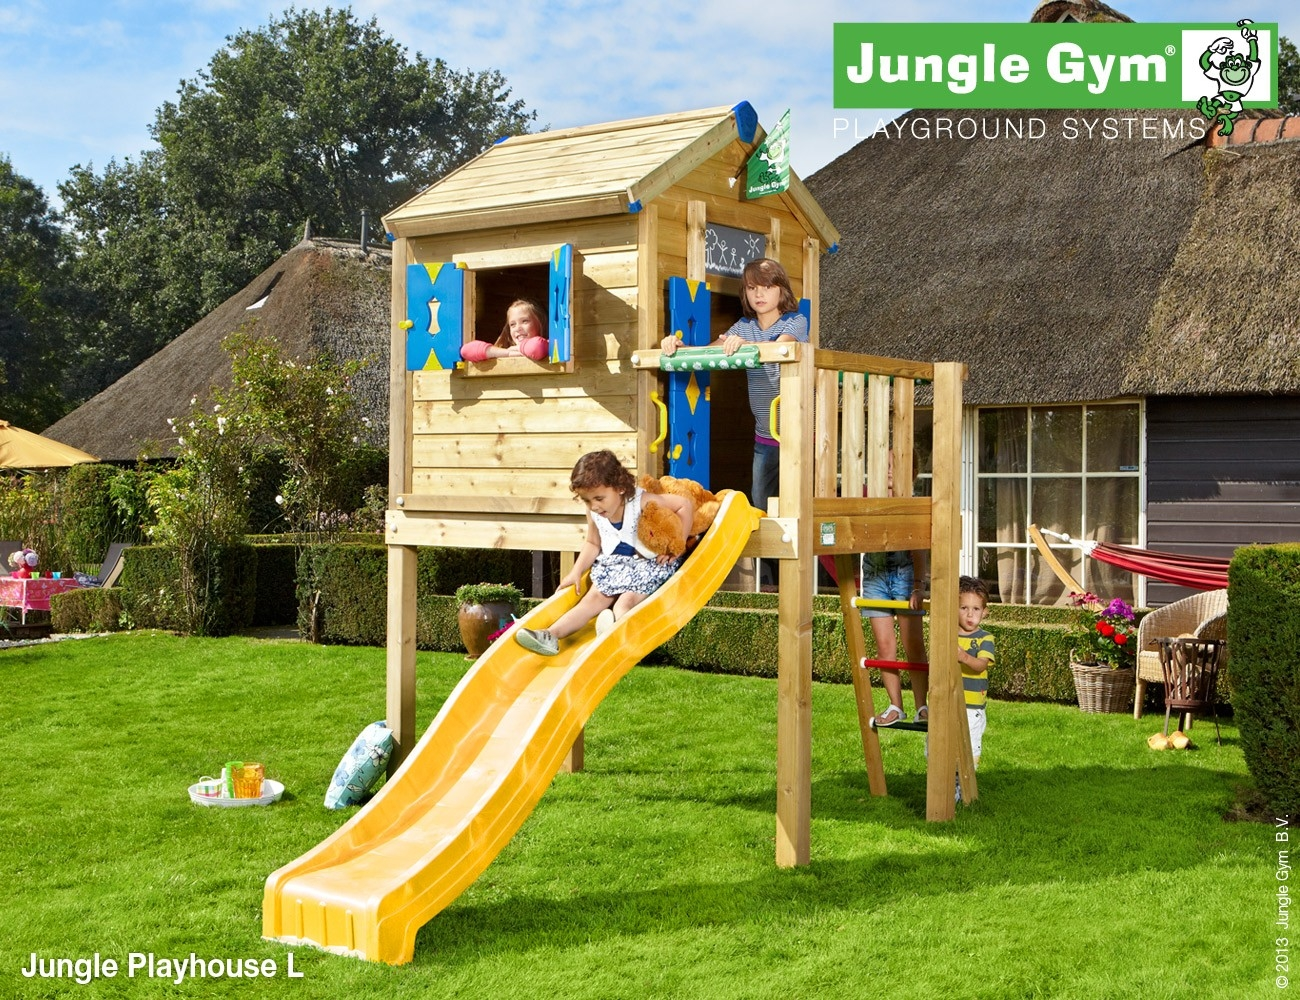 Jungle Gym Playhouse L DeLuxe Geel